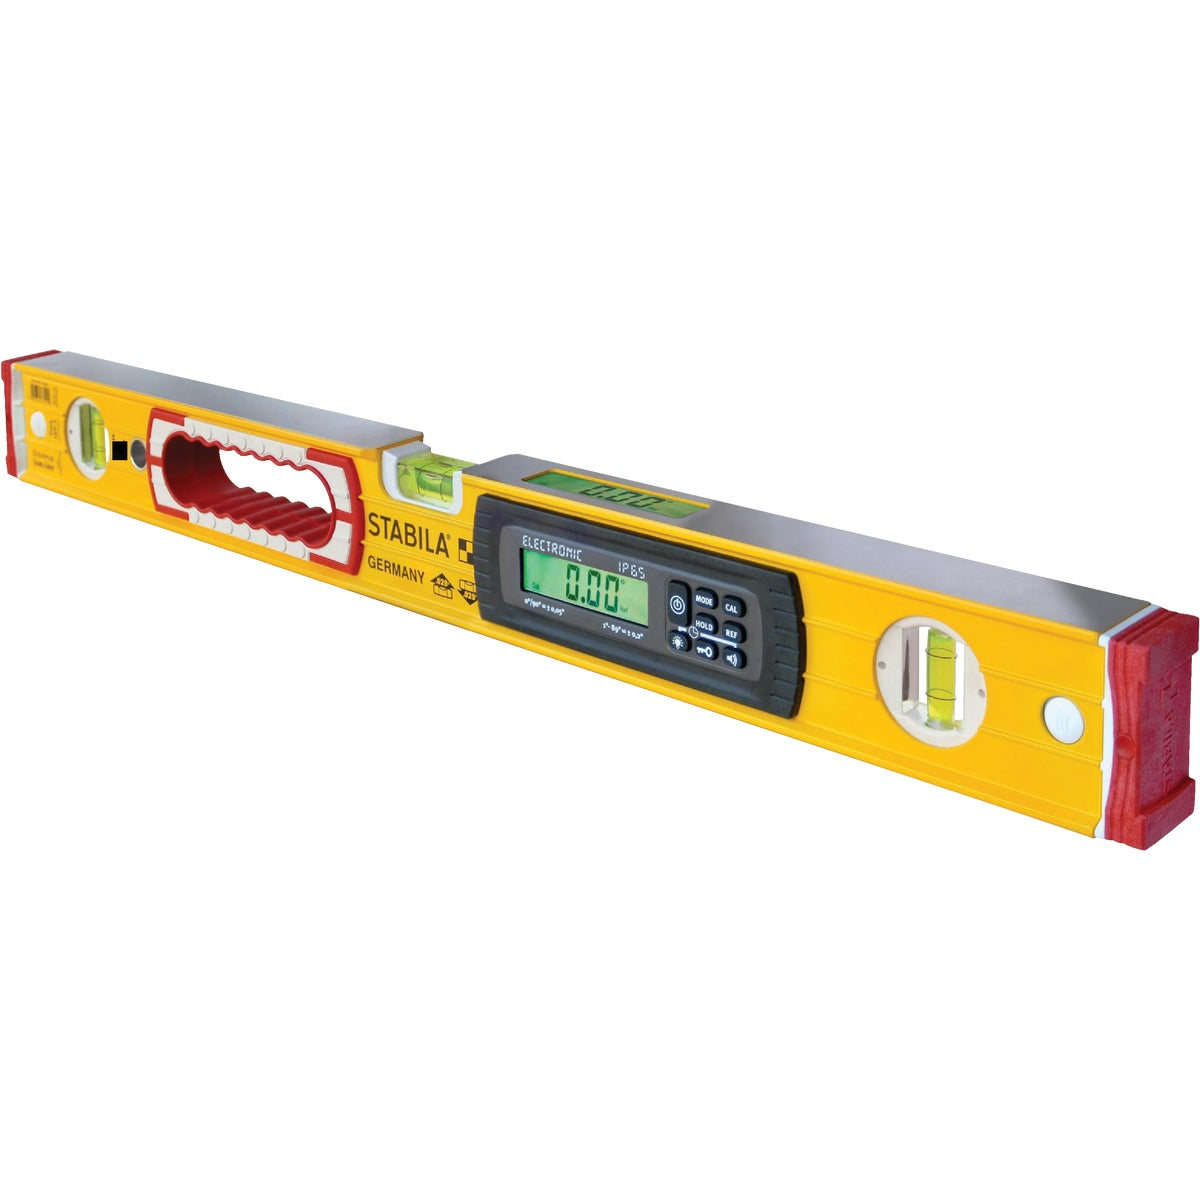 "48"" ELECTRONIC LEVEL - 36548 by Stabila"